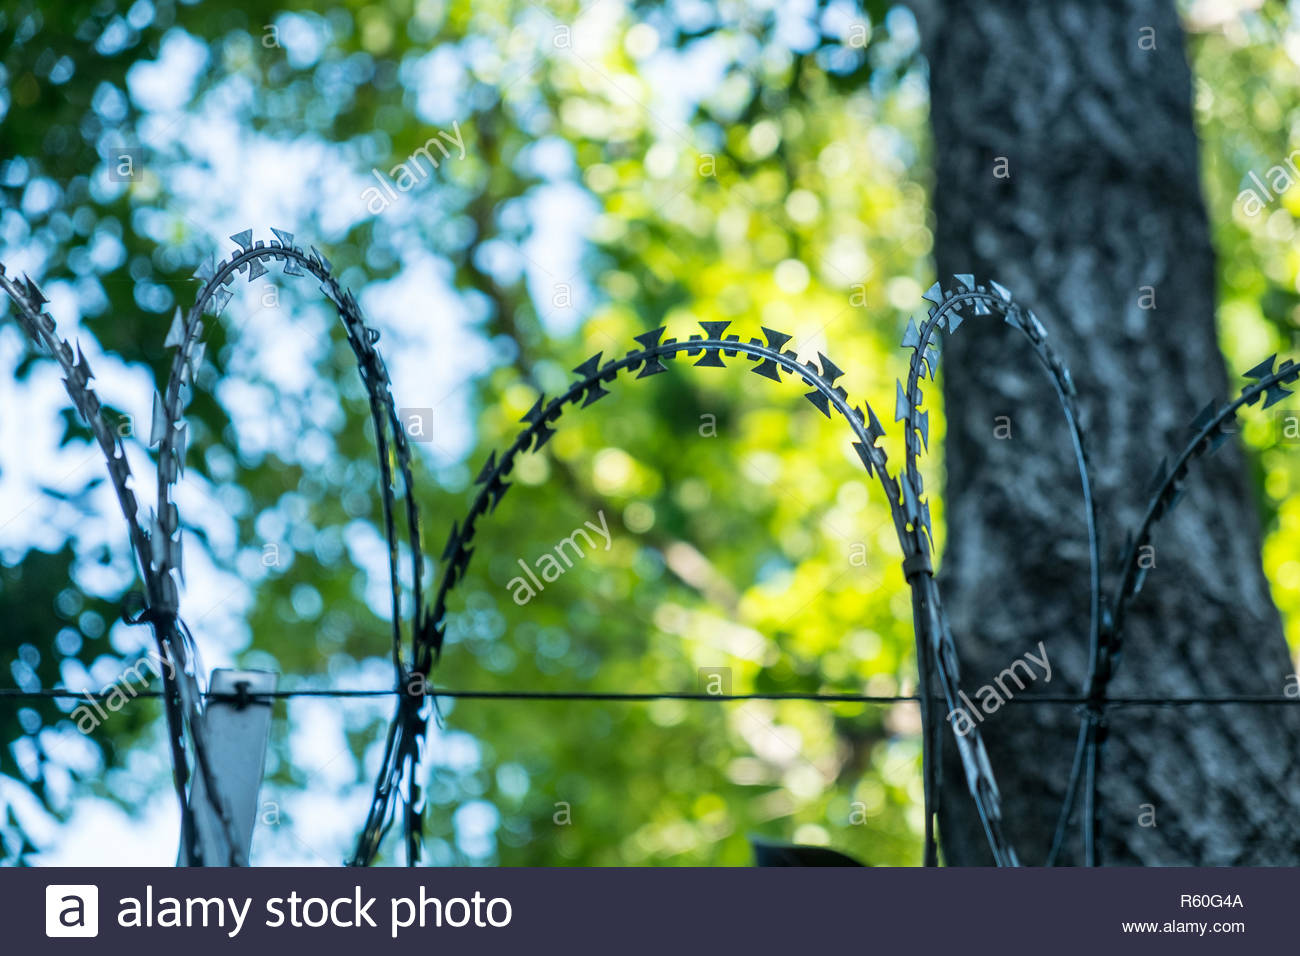 Portable barrier of sword blades. Barricades on the stone wall. Stock Photo